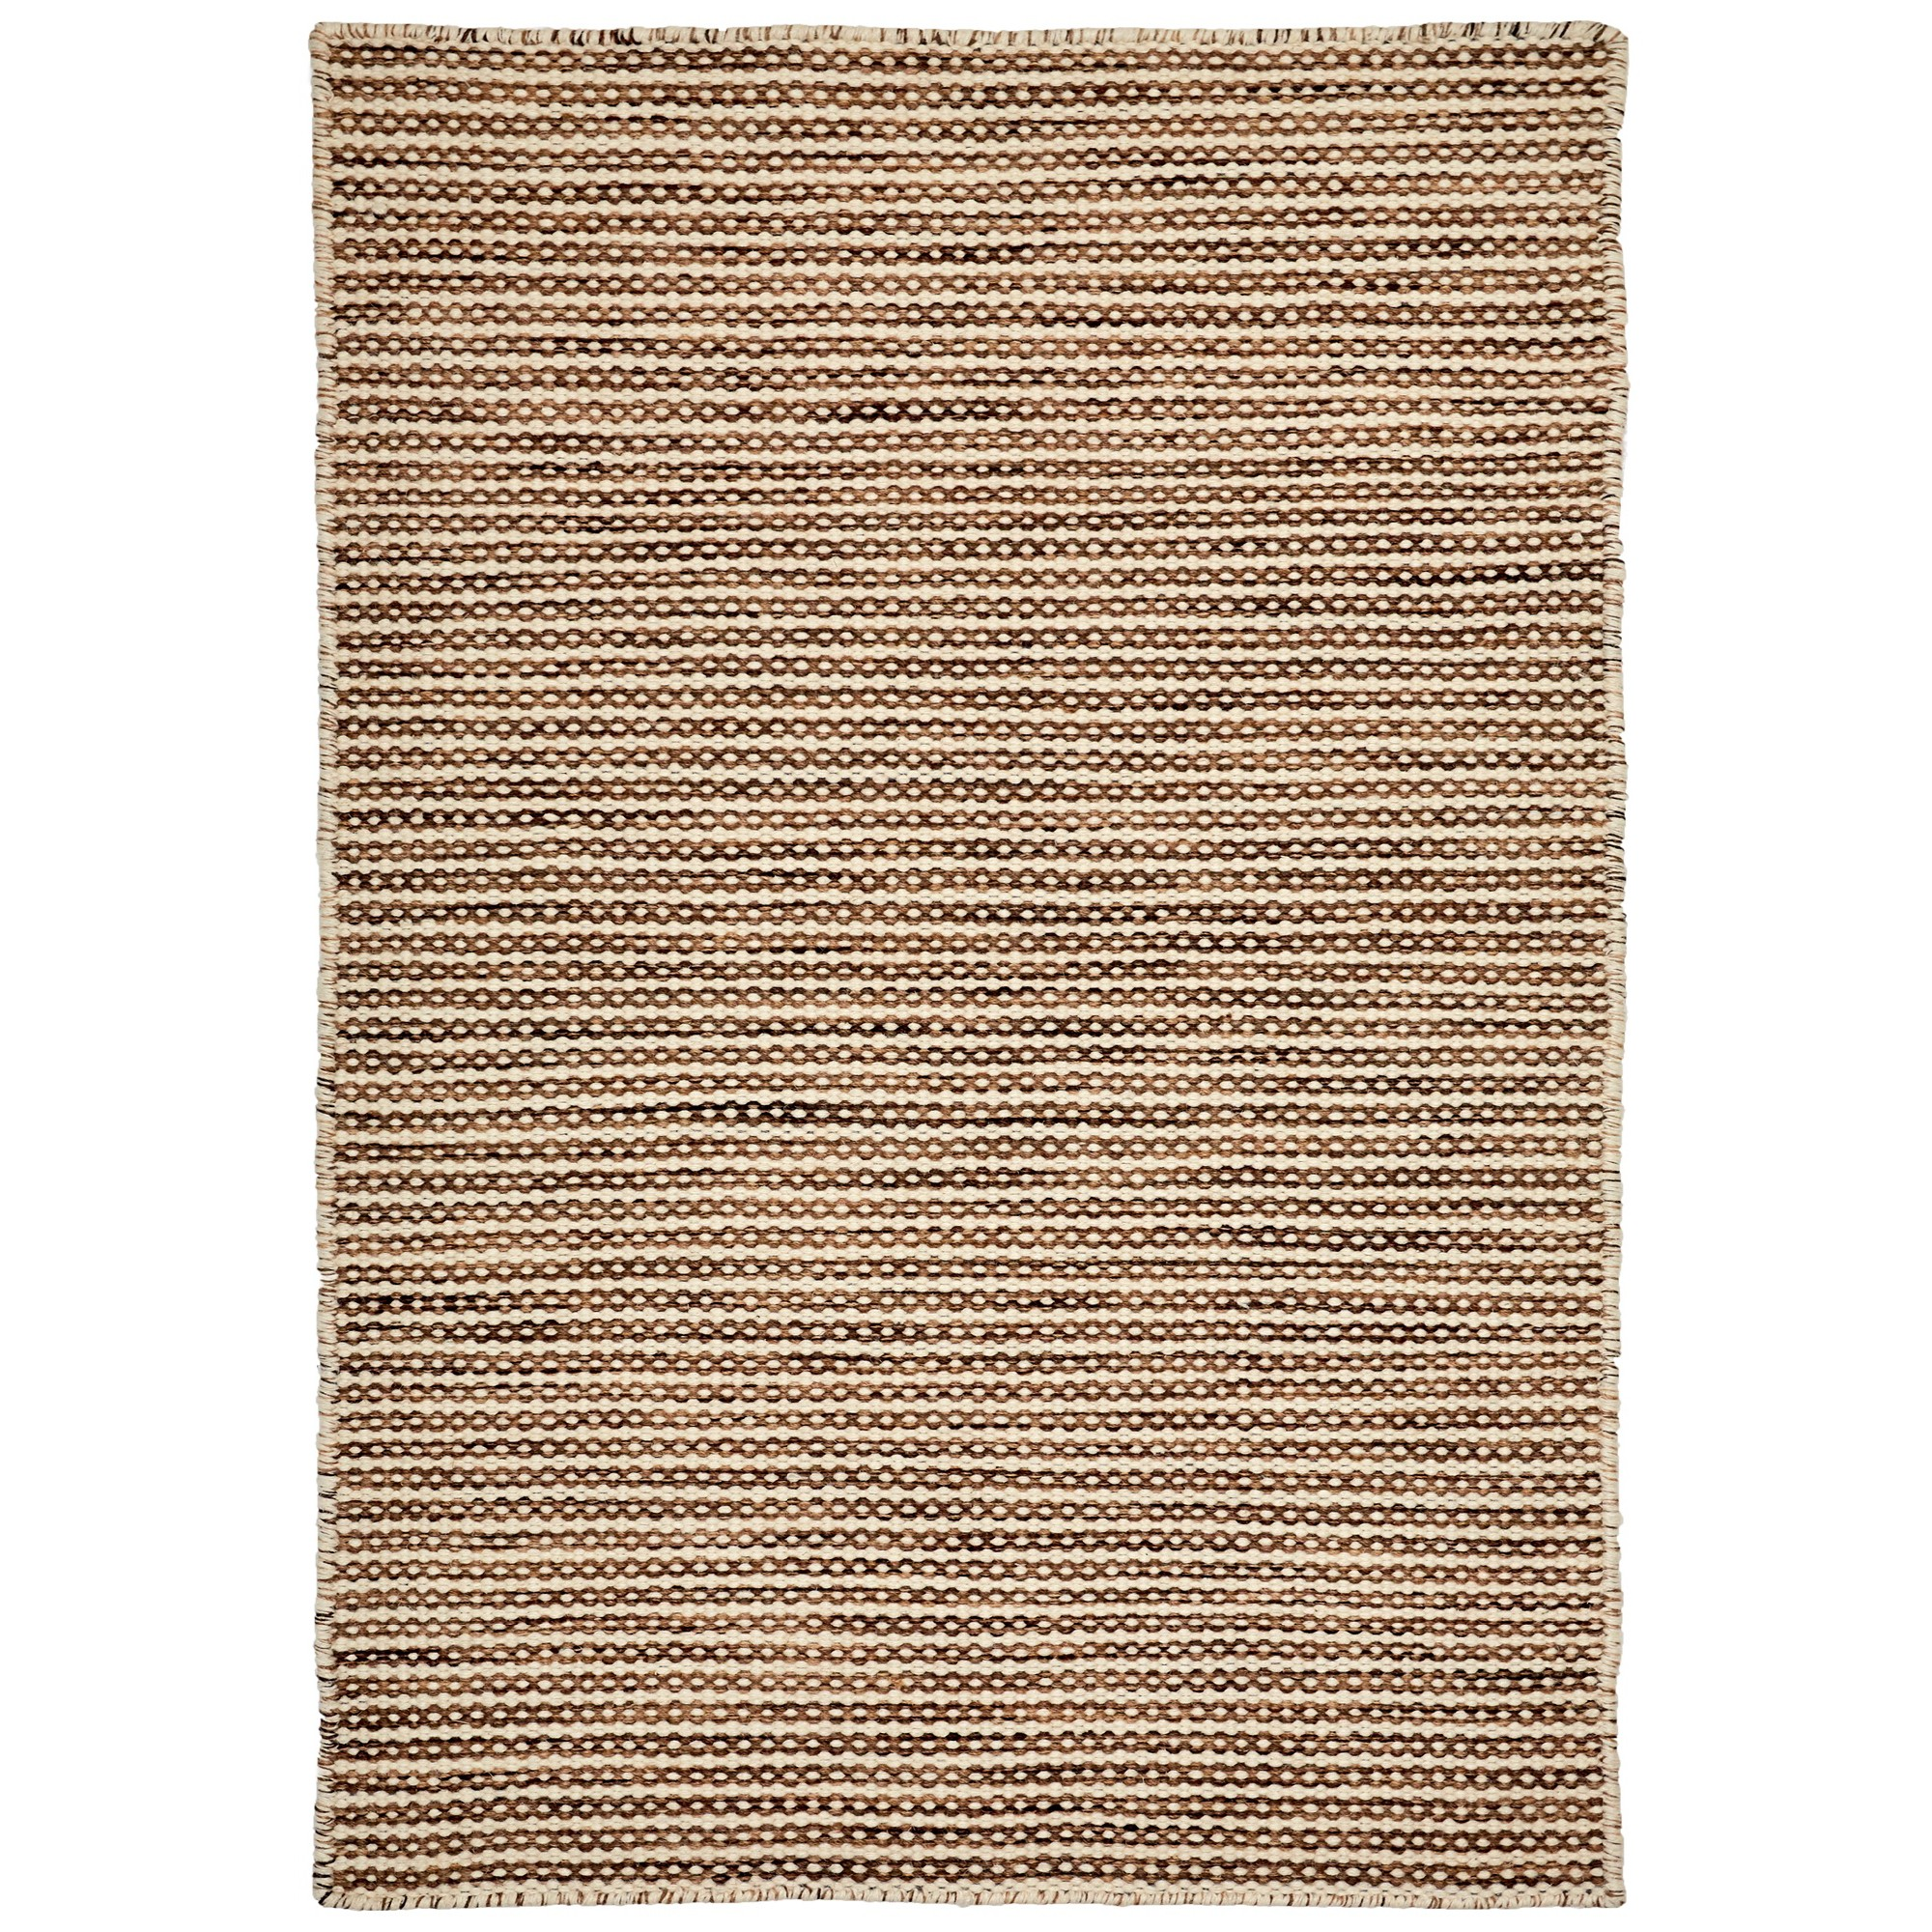 Chicago Handwoven Reversible Wool Rug, 330x240cm, Brown